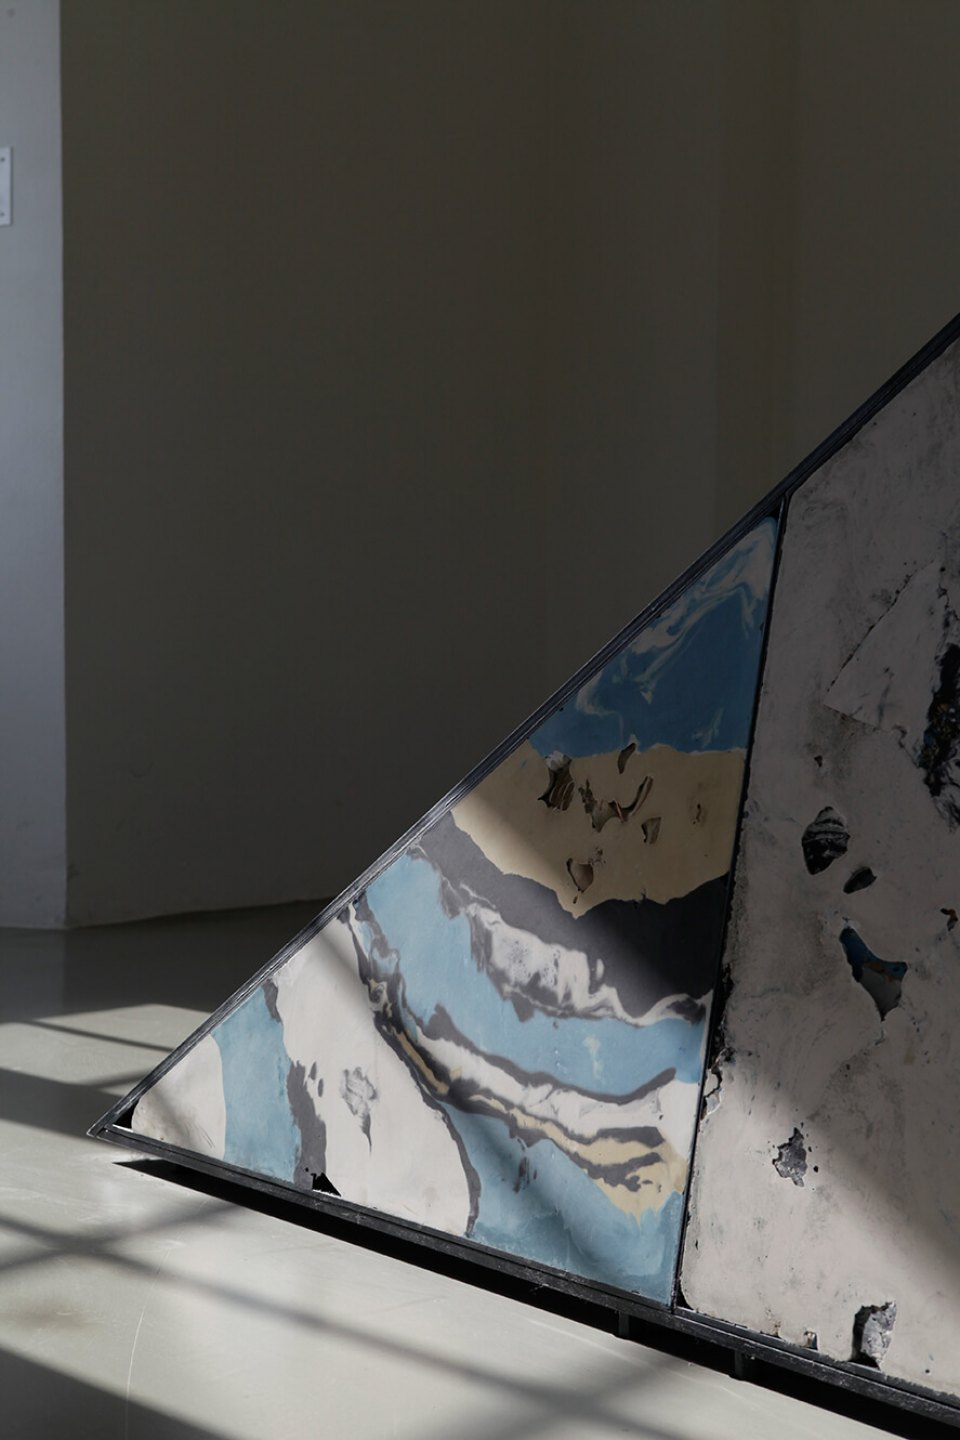 Mariana Castillo Deball,&nbsp;<em>Uncomfortable Objects</em>, 2012, dOCUMENTA (13), plaster, pigments, stones, shells, masks, fabric, glass, wood, clay, and diverse objects mounted on a steel frame, 600 × 400 × 300 cm - Mendes Wood DM